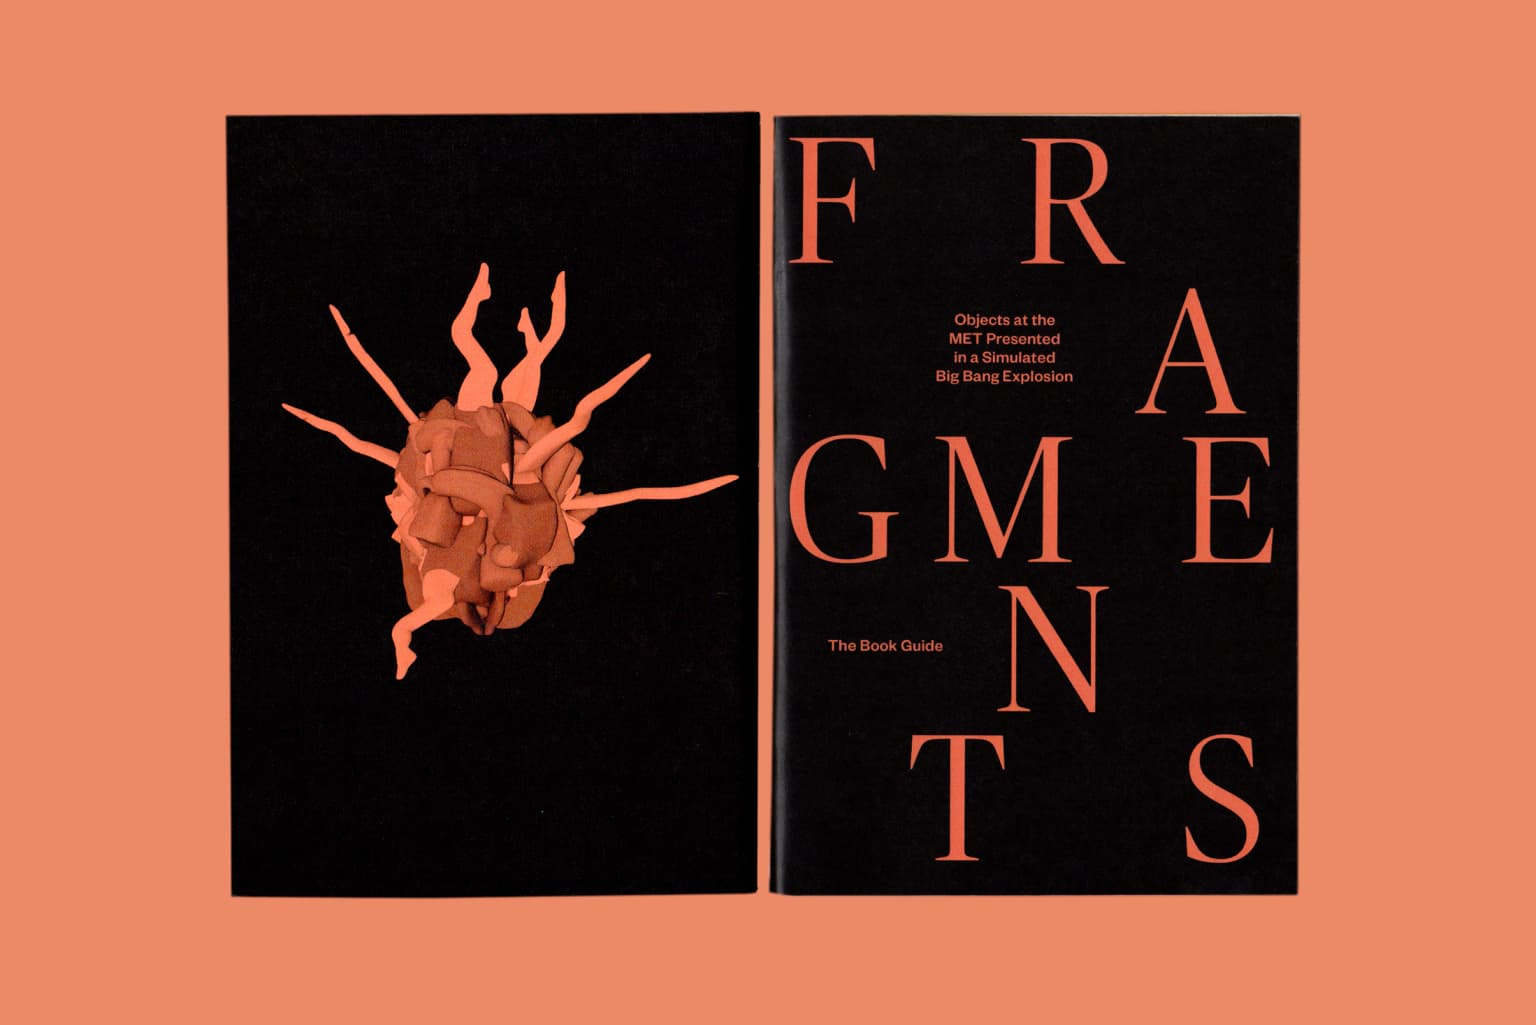 Fragments: Objects at the MET presented in a simulated Big Bang Explosion